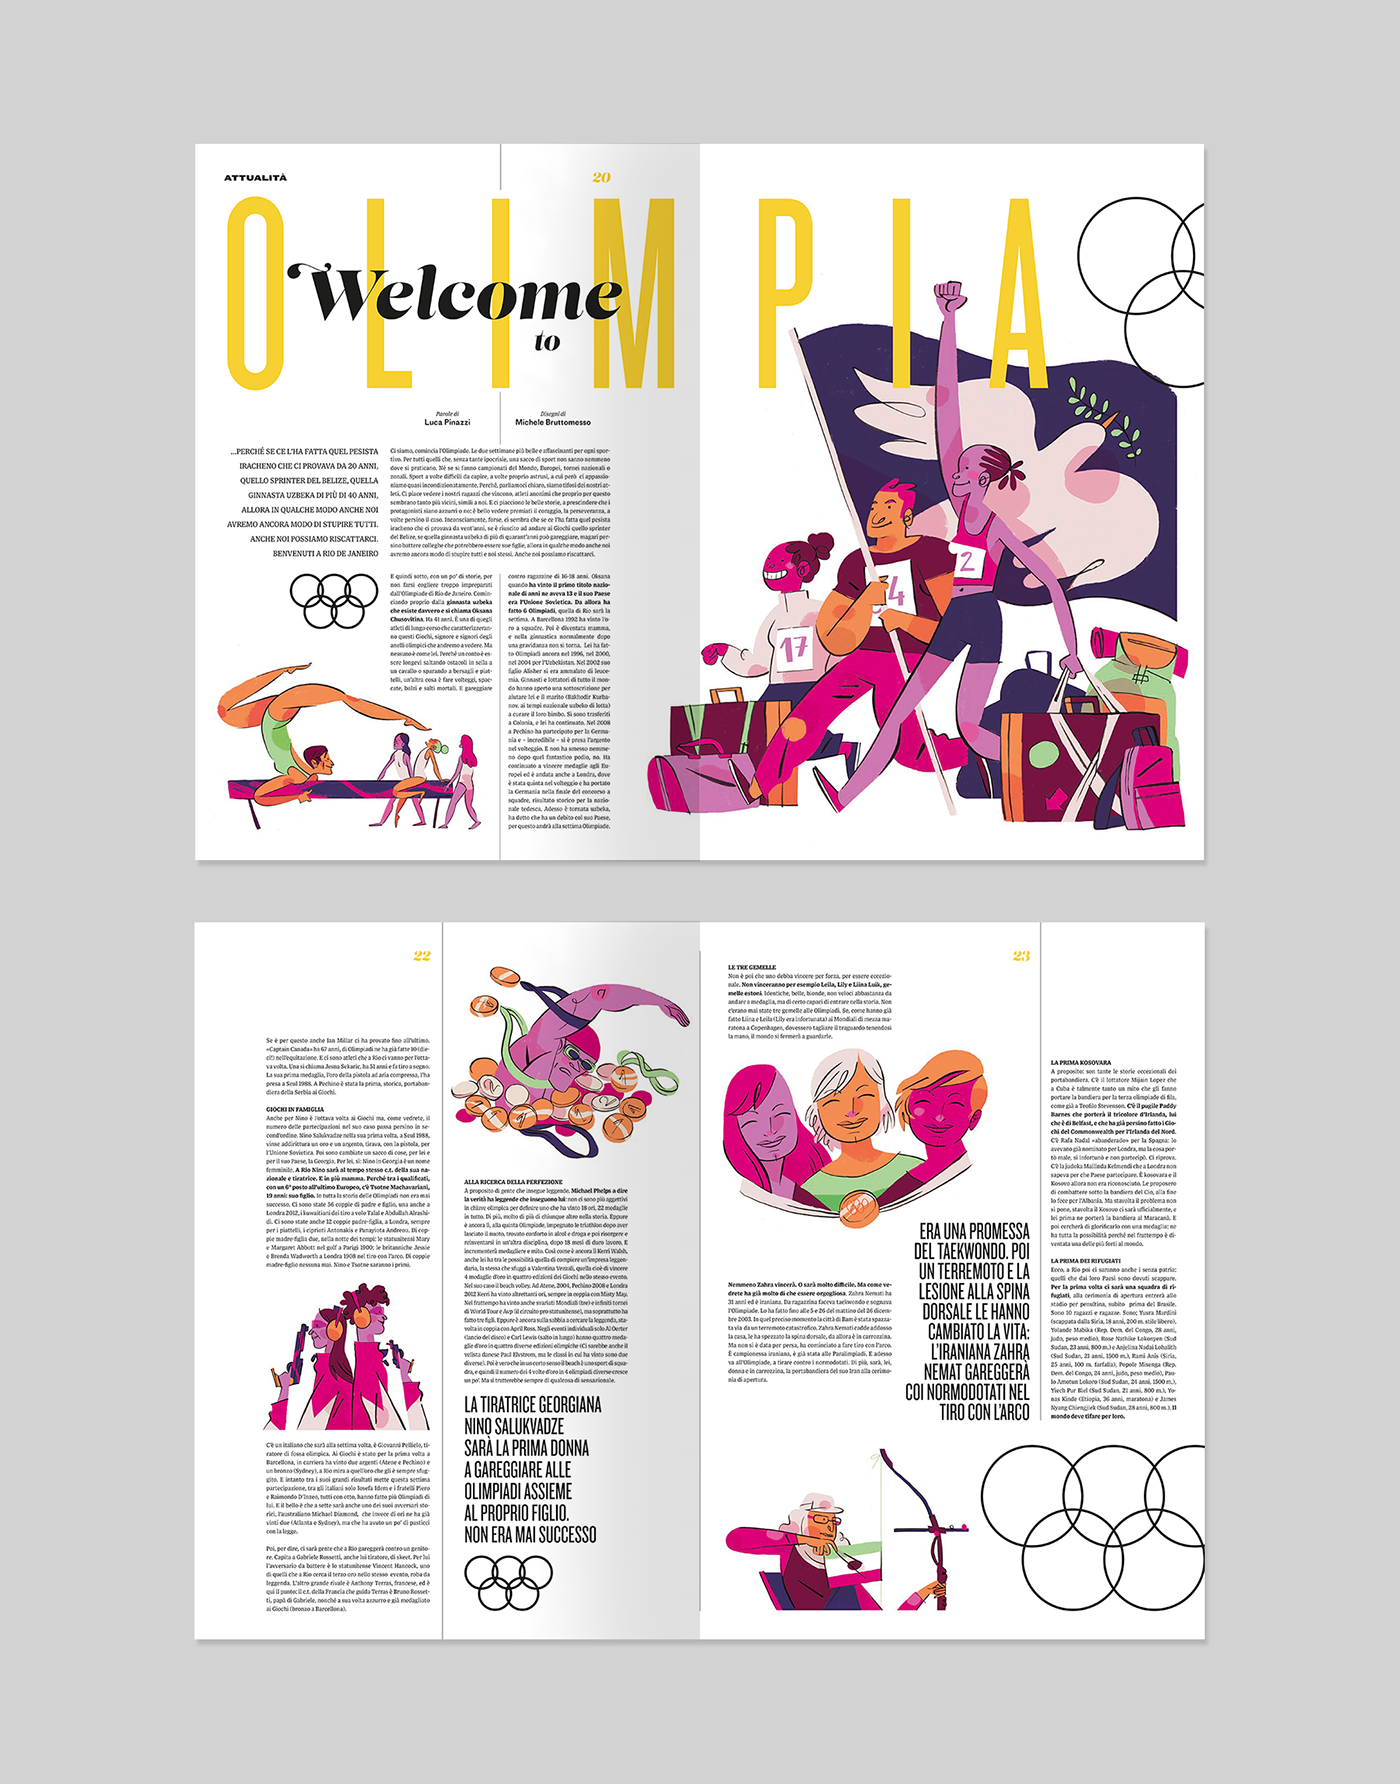 Rio Olympic Games For Soccer Illustrated On Behance